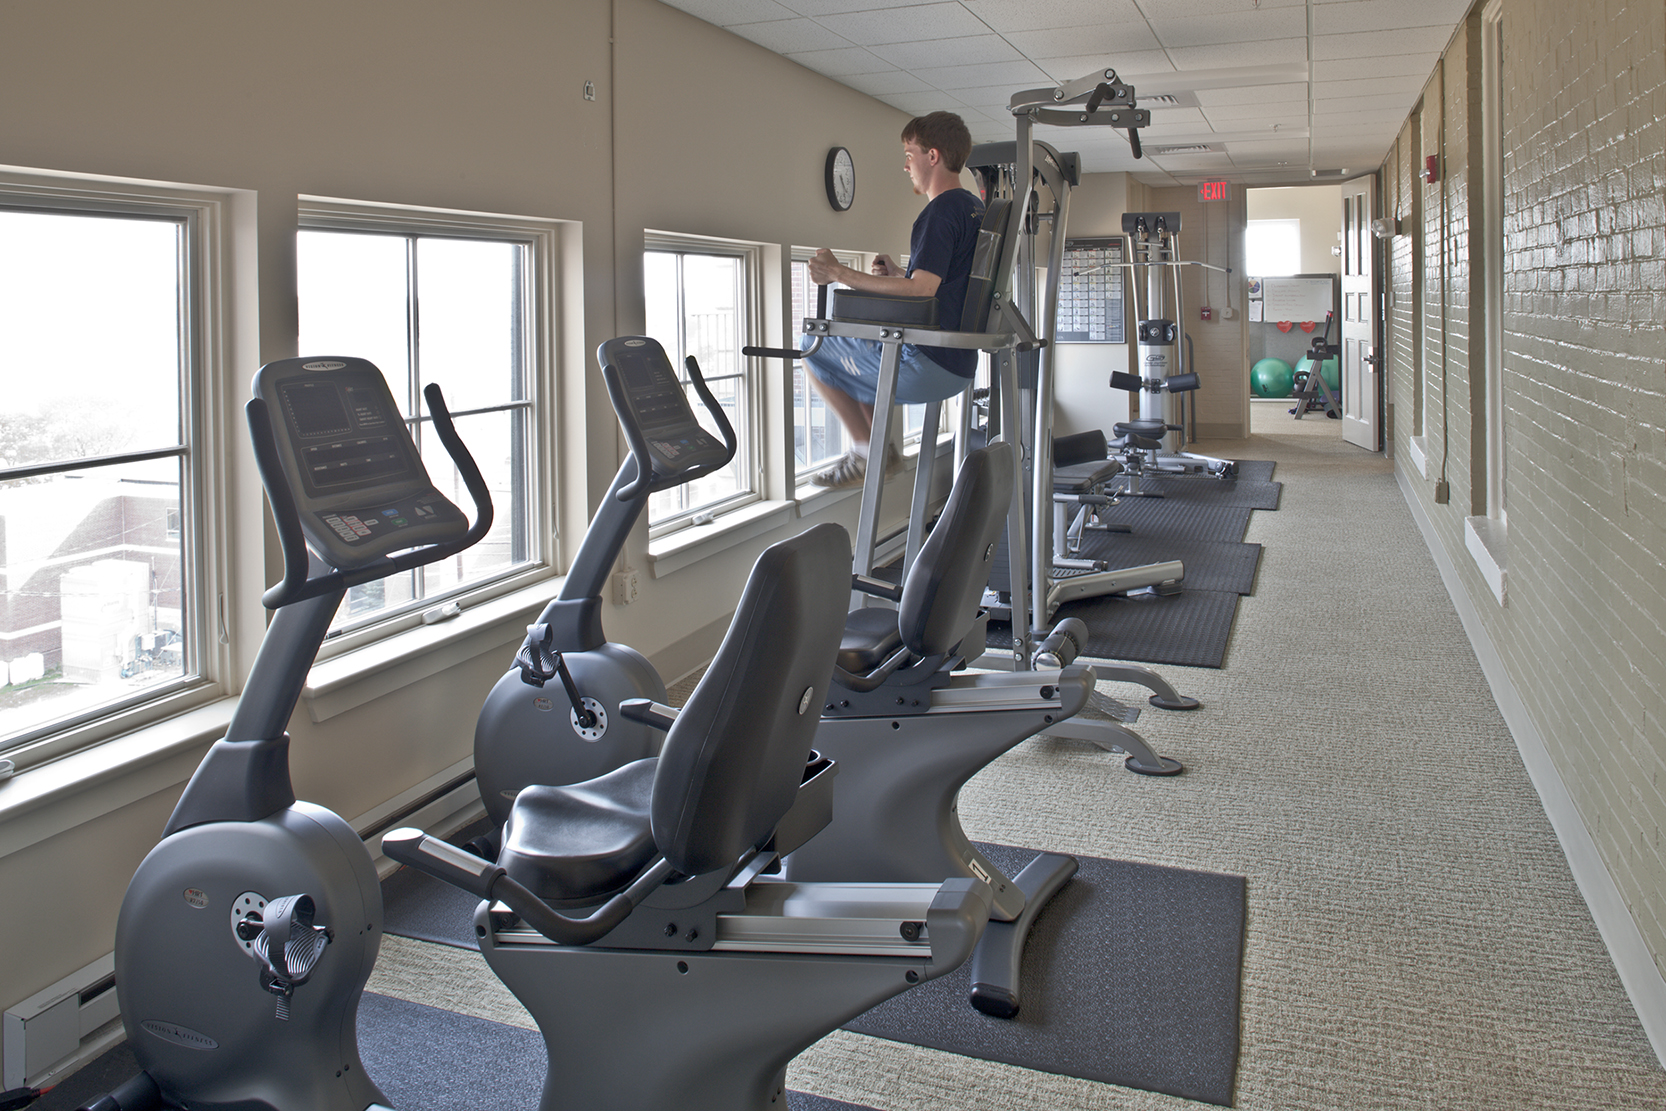 The second enclosed porch is part of the employee fitness center, which includes locker rooms, two exercise rooms, and commanding views of Casco Bay.